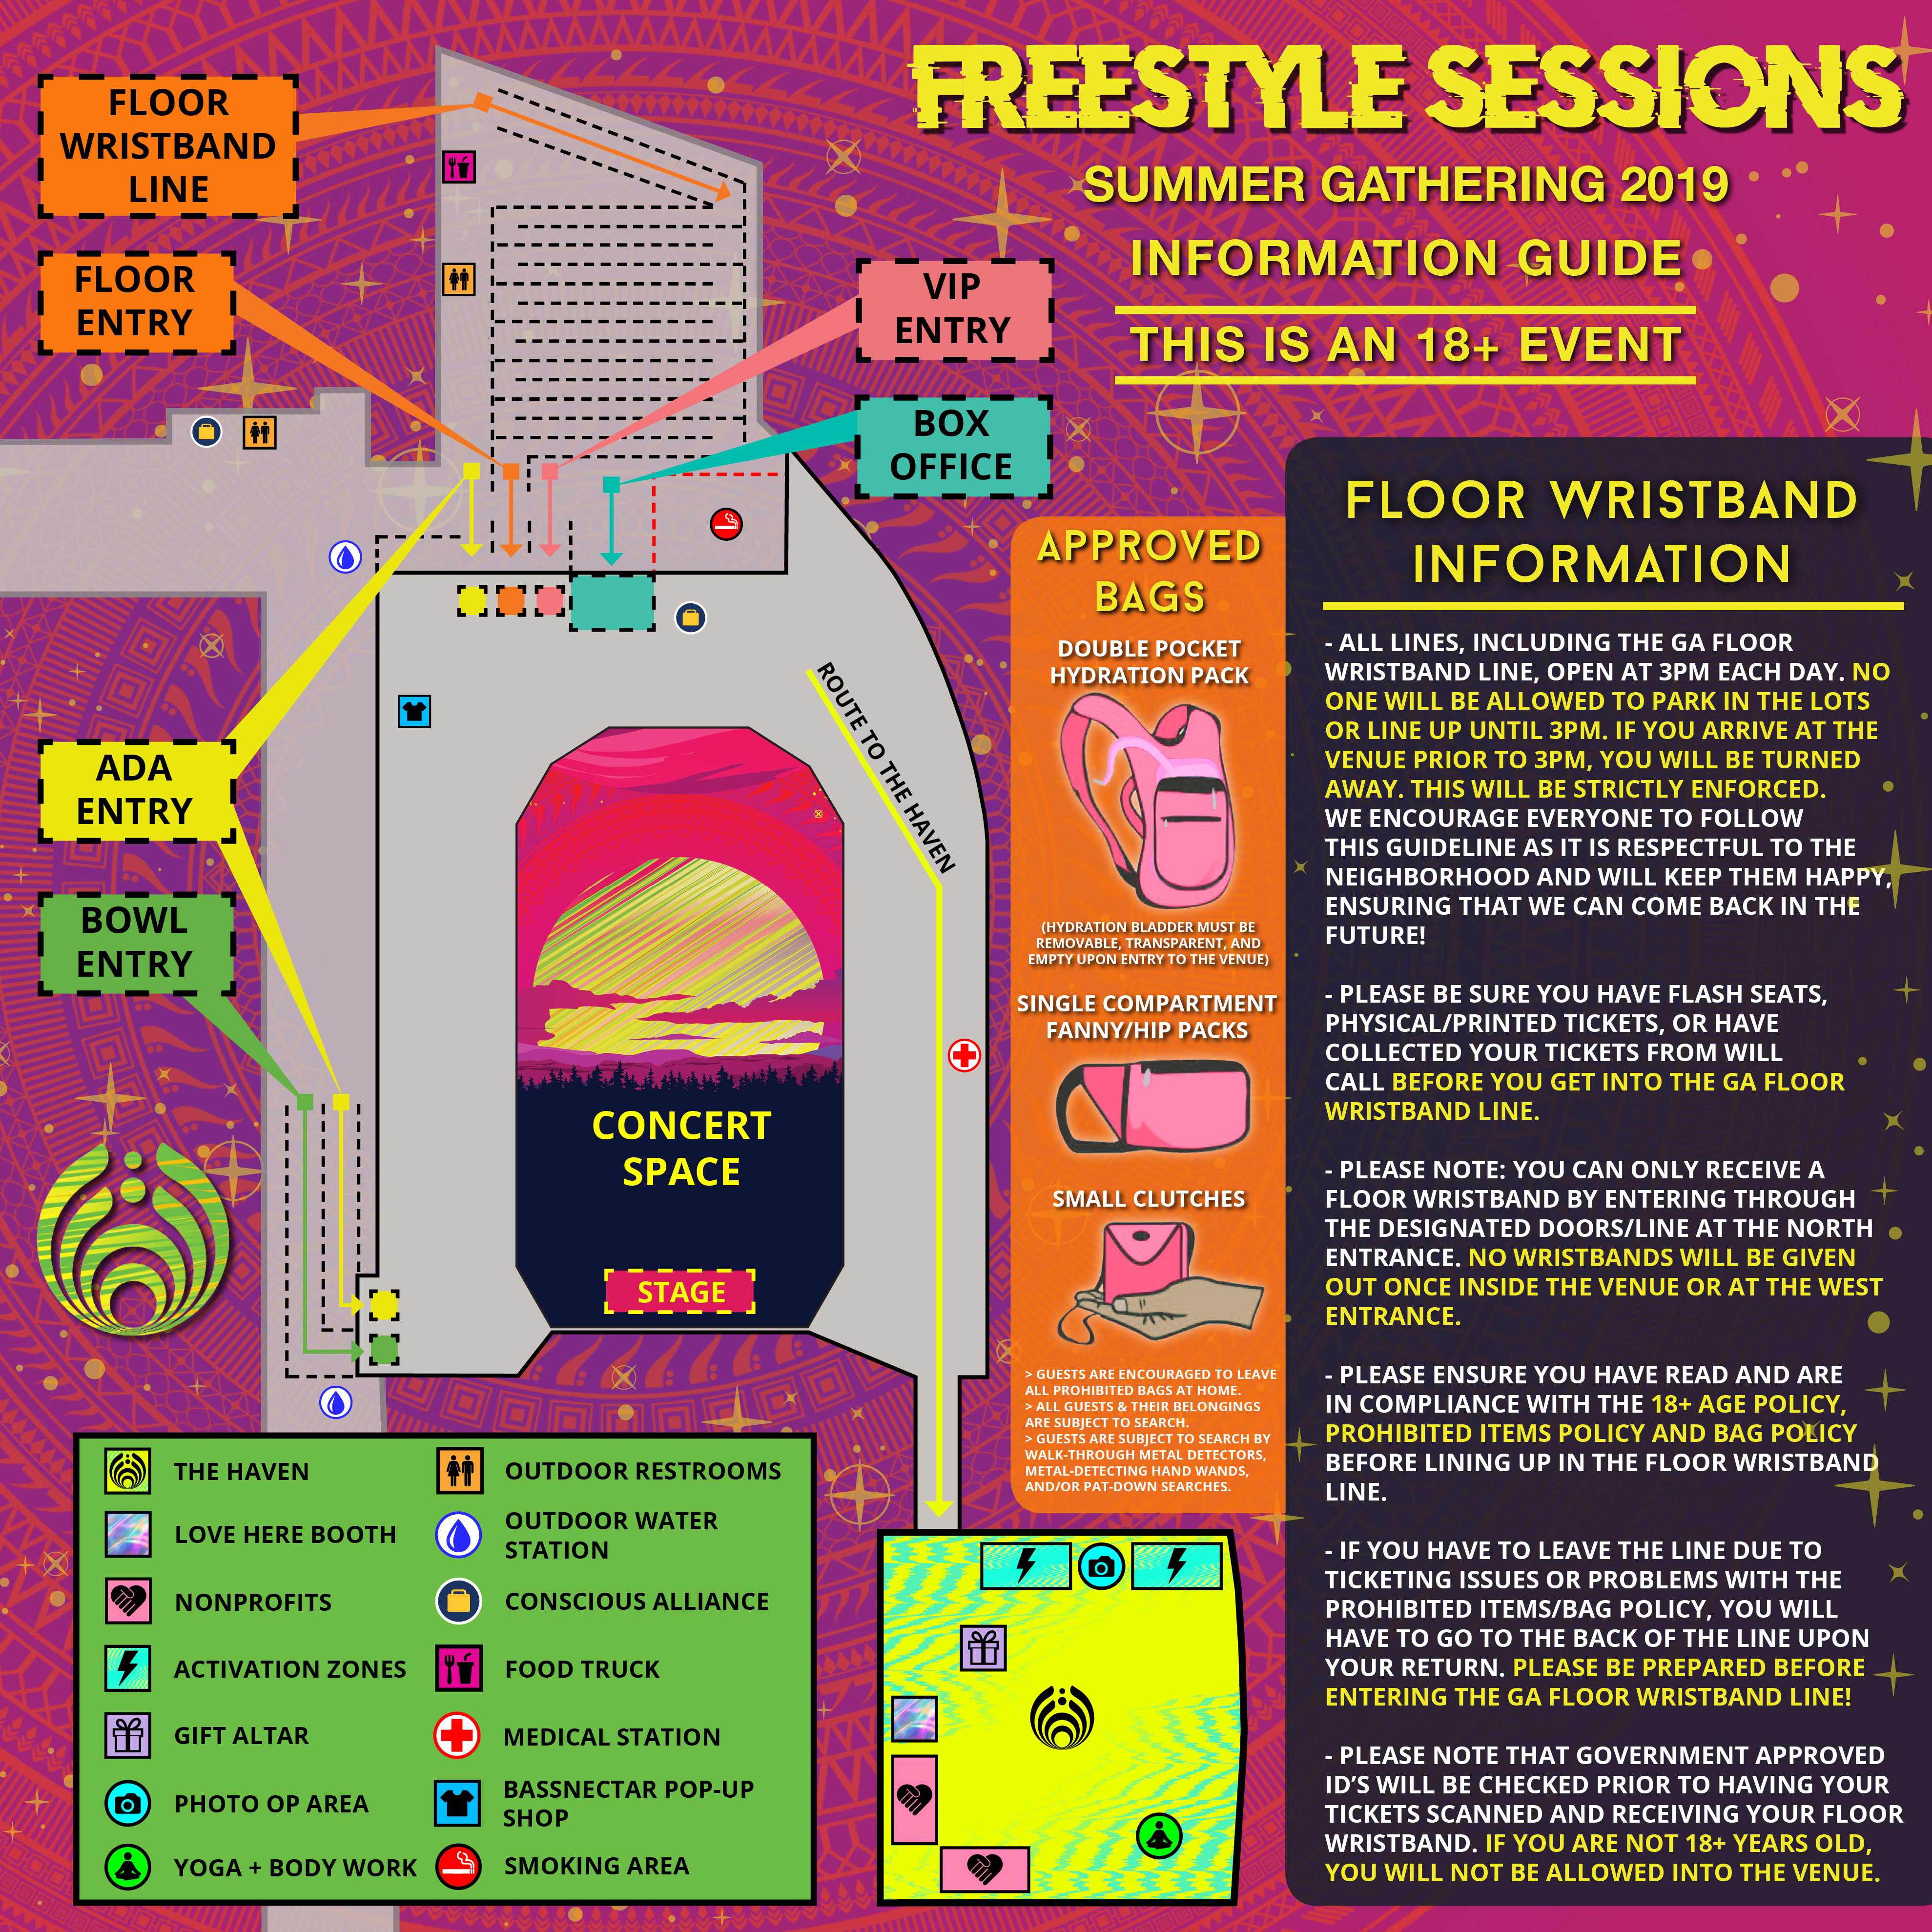 Freestyle Sessions - Summer Gathering - 2019